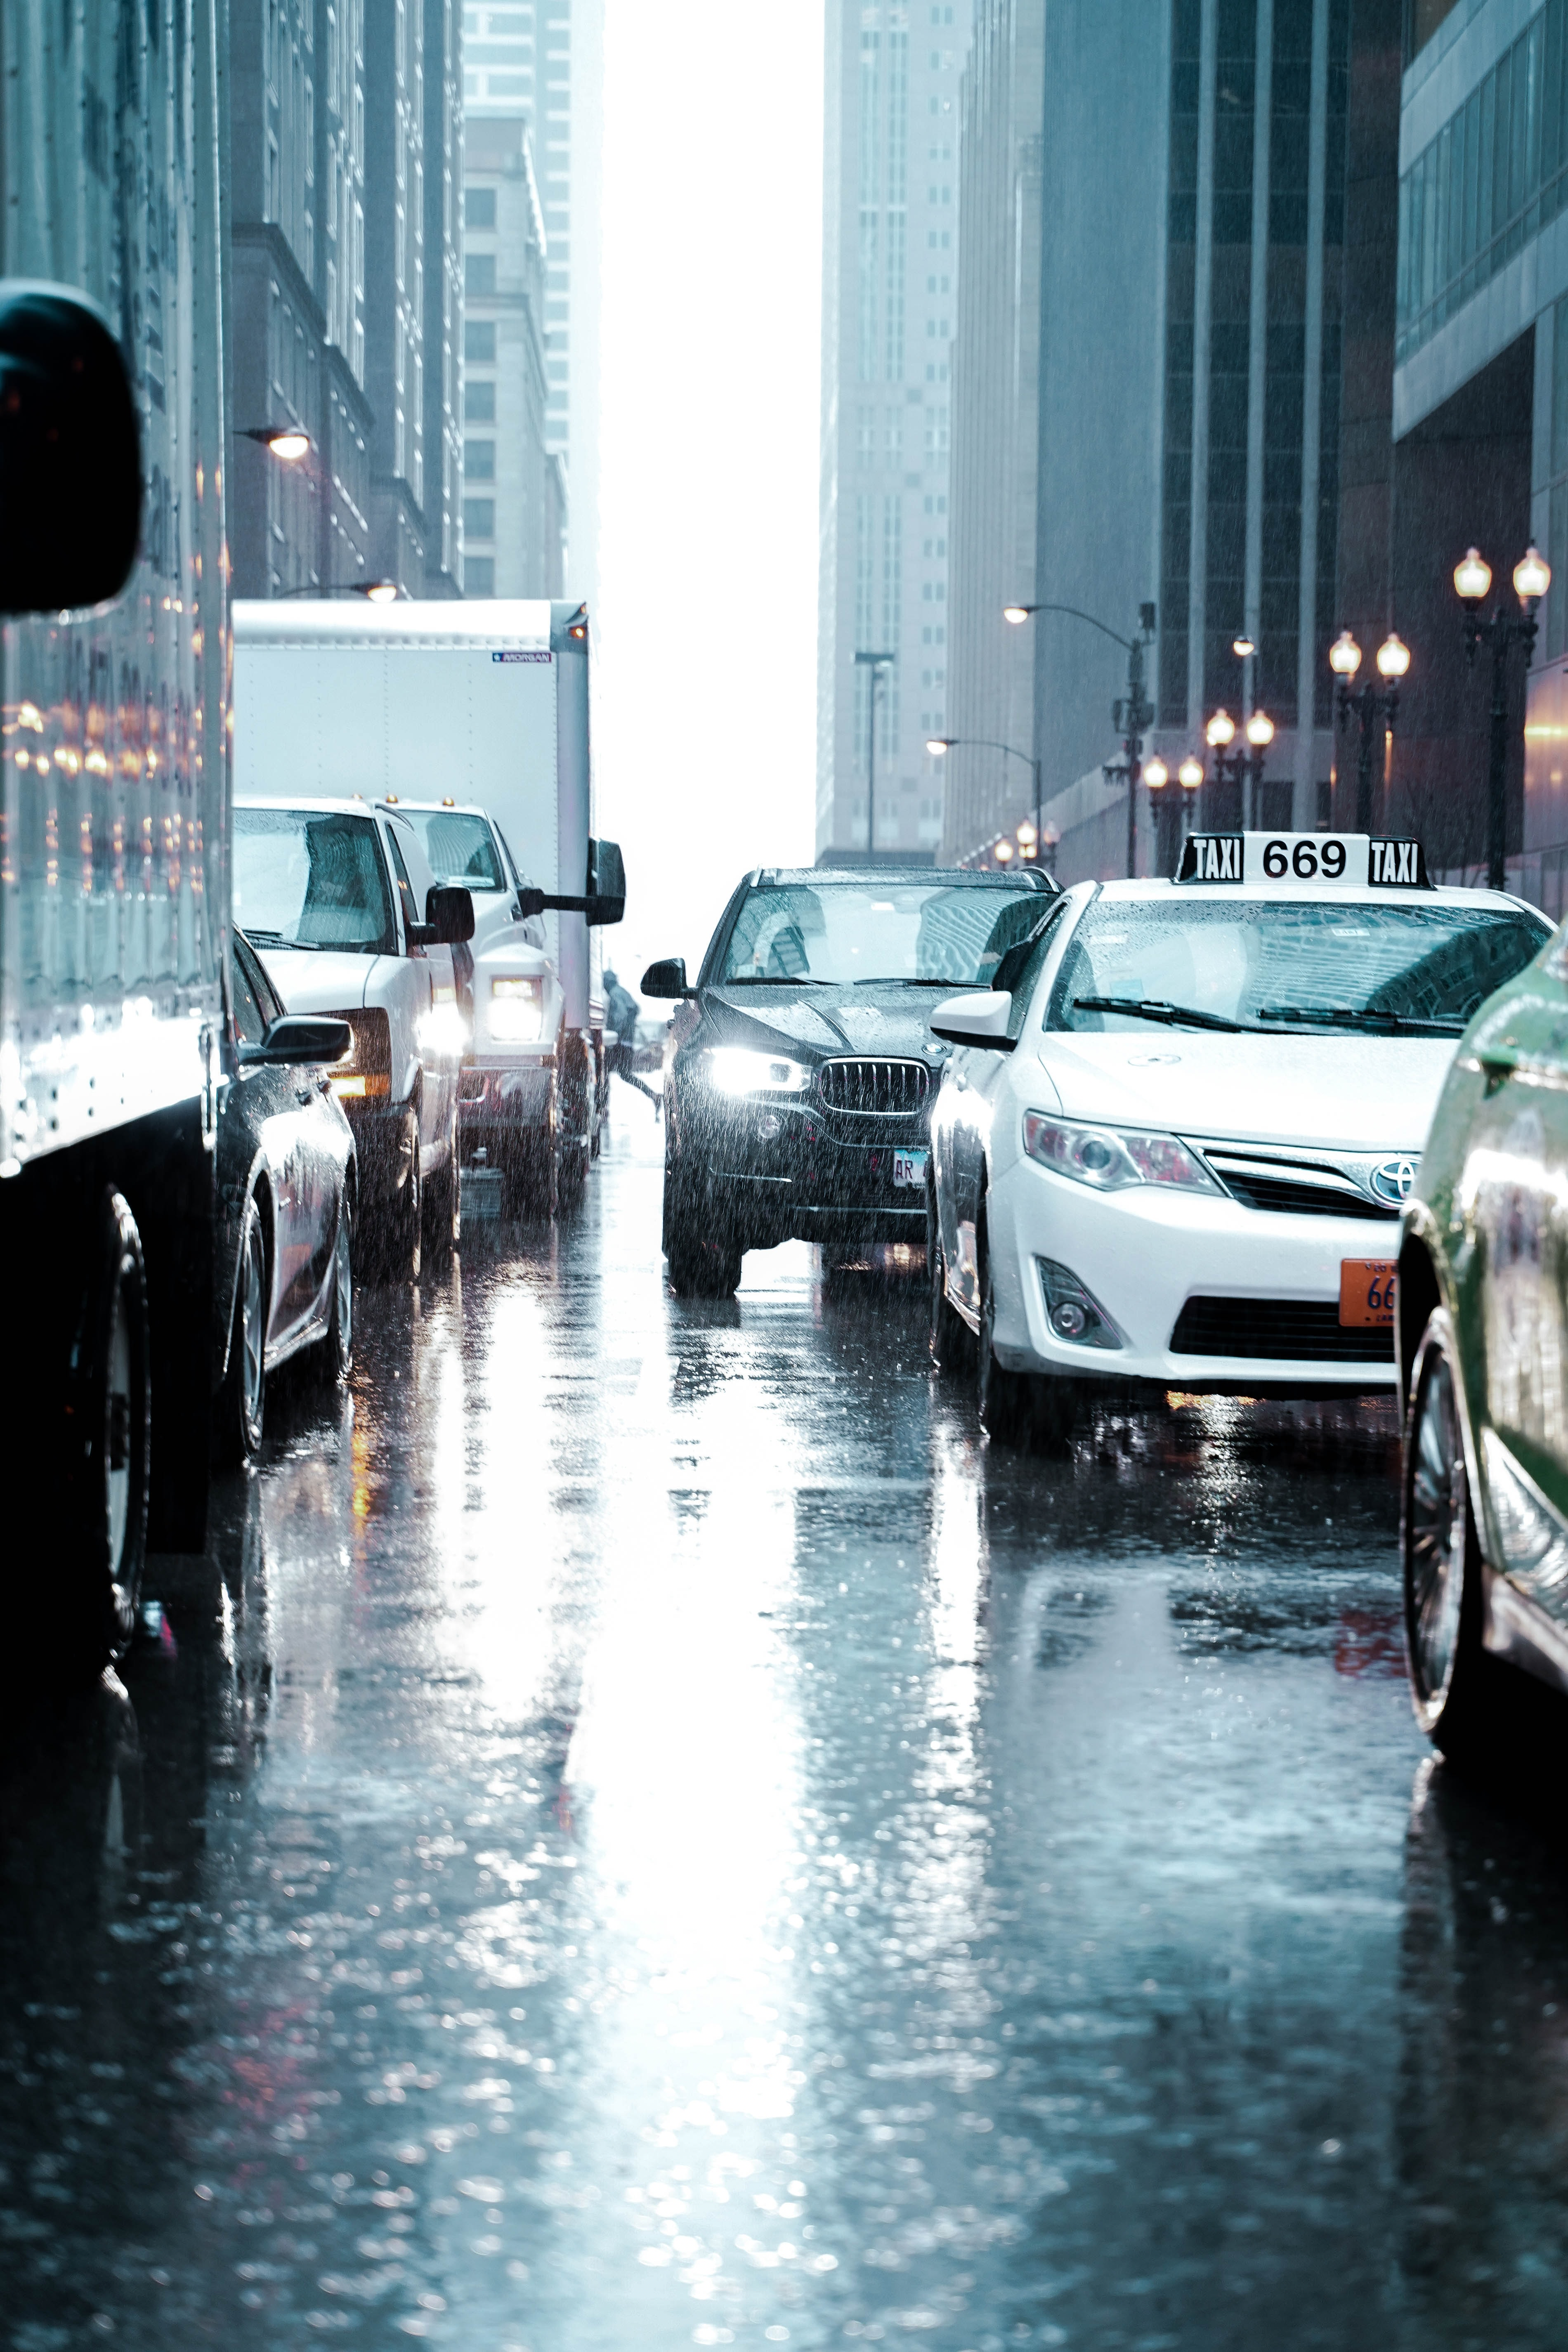 vehicle stuck in traffic during rainy day